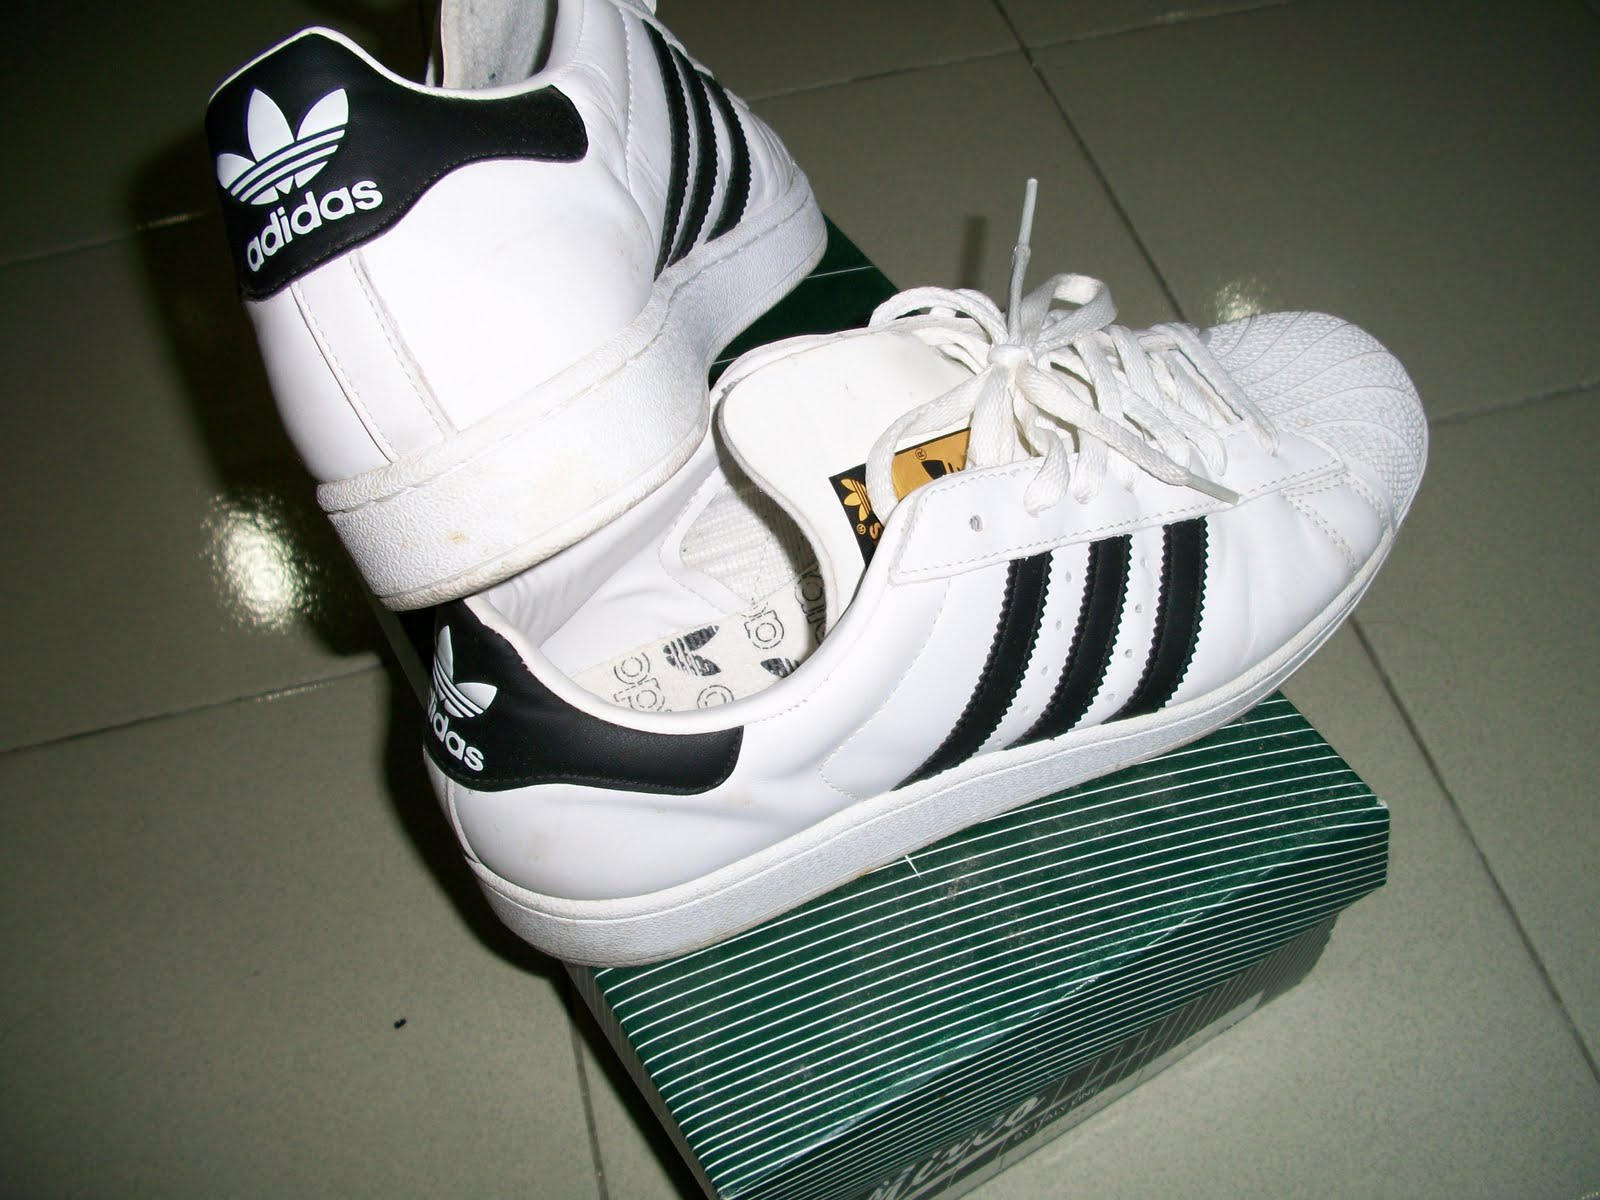 collectible items  Adidas Superstar shoes 6e0b71b79d6a